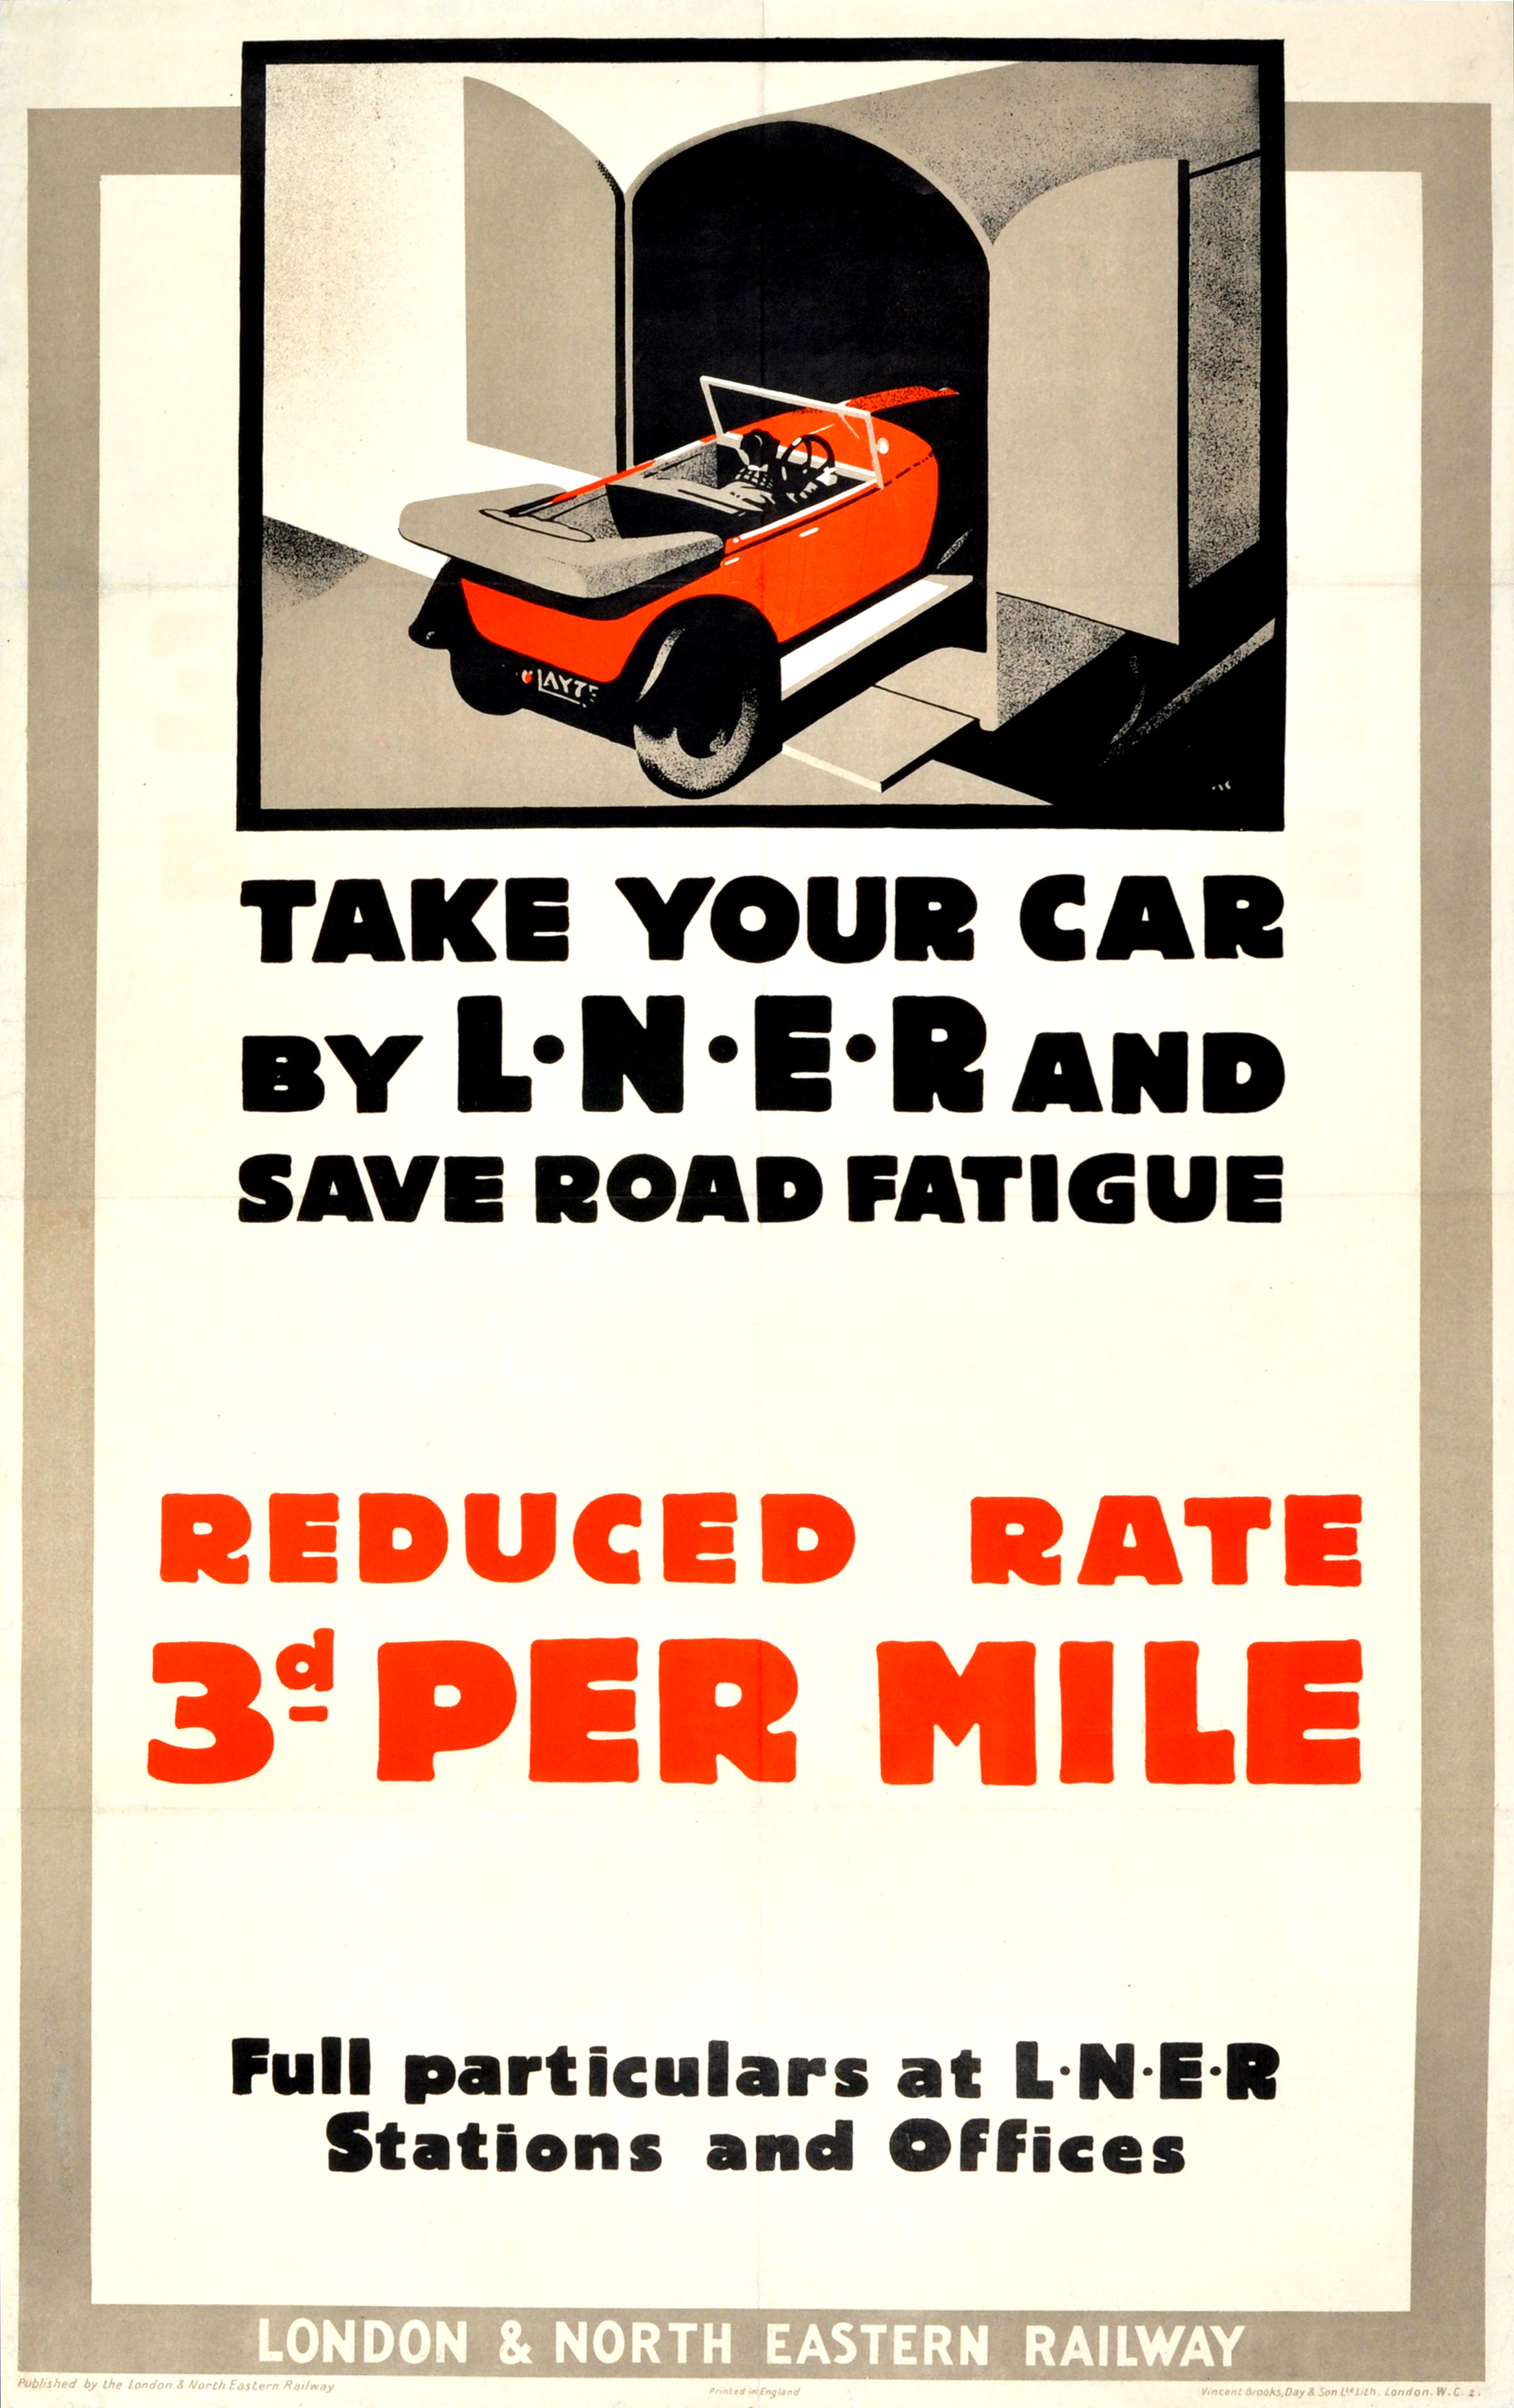 Lot 1320 - Advertising Poster LNER Railway Take Your Car by Train